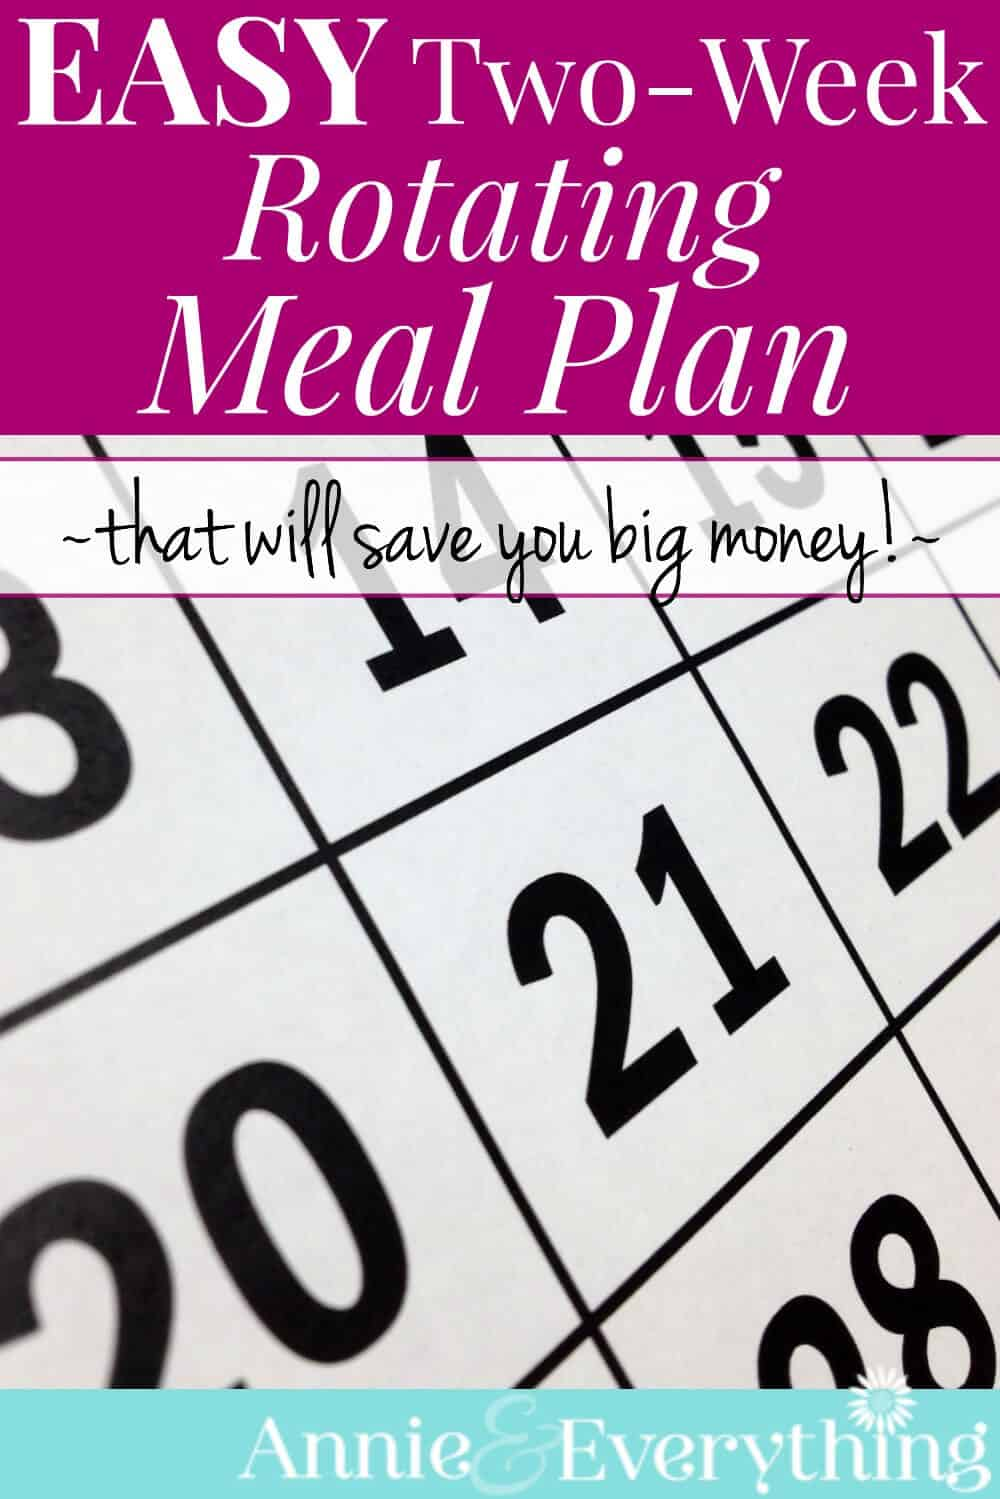 This easy two-week meal plan can be used over and over again! With variety built in! If you hate meal planning, you won't have to do it ever again -- and you'll still save money!